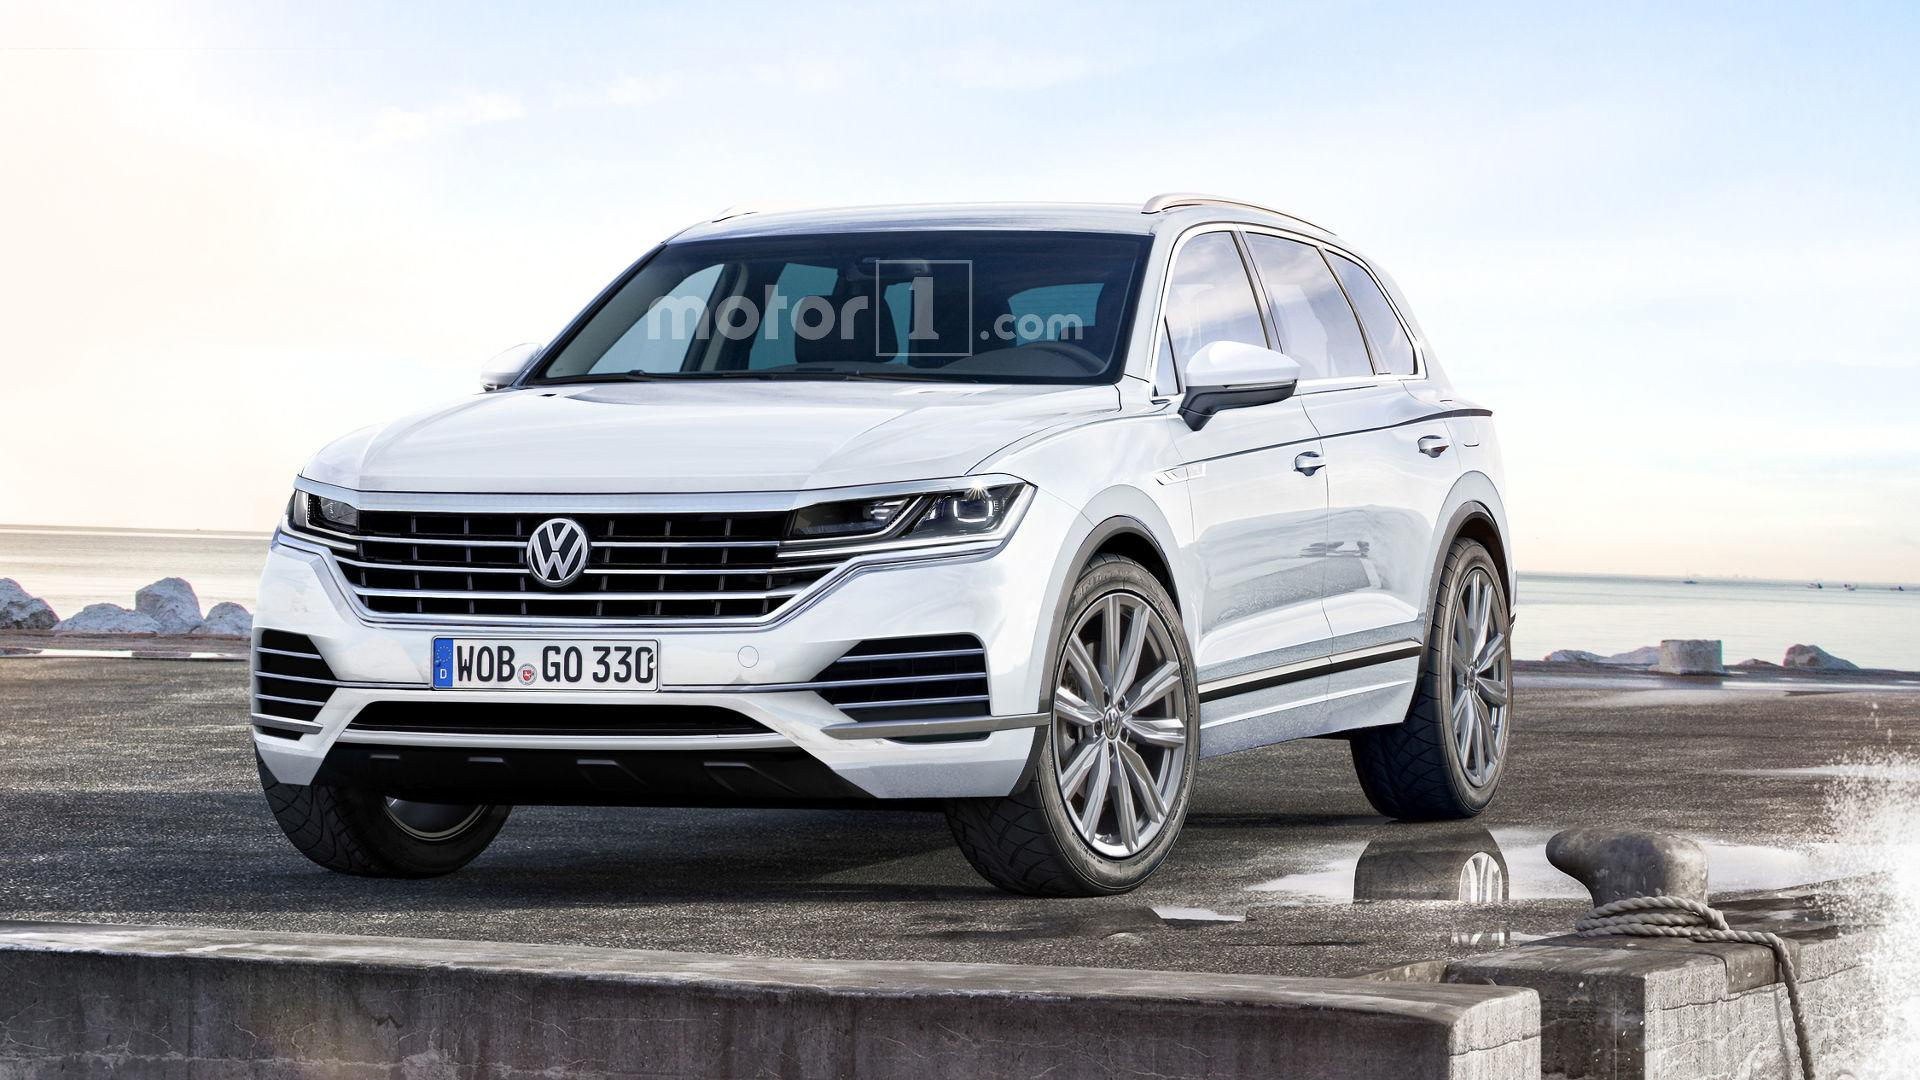 Vw Suv Polo >> 2018 VW Touareg Rendered With More Upscale Cues